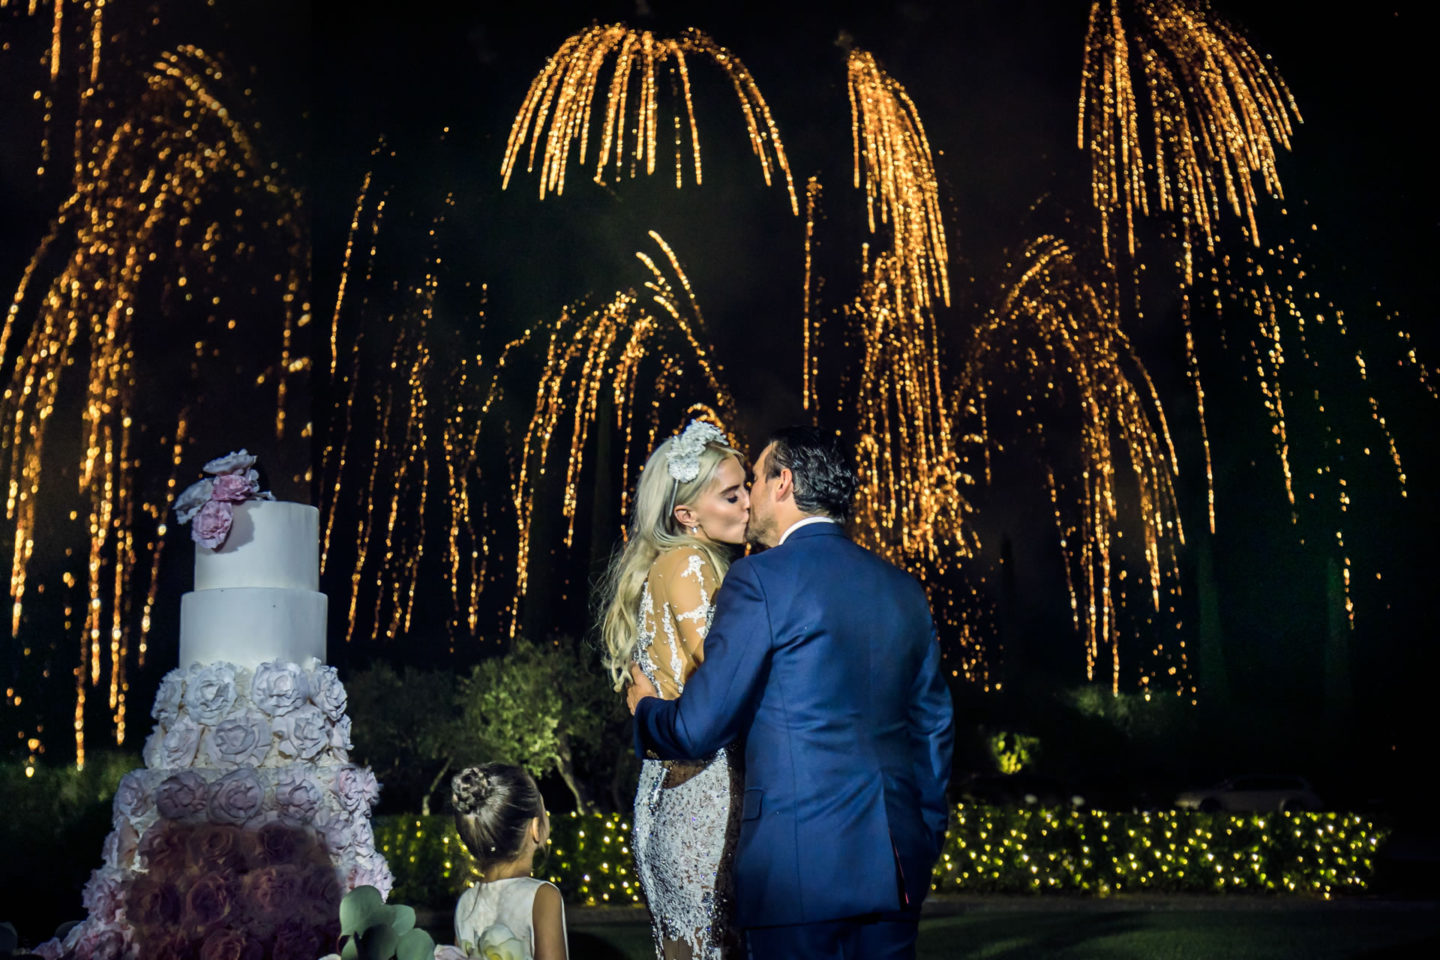 Cake :: Exciting wedding in the countryside of Siena :: Luxury wedding photography - 62 :: Cake